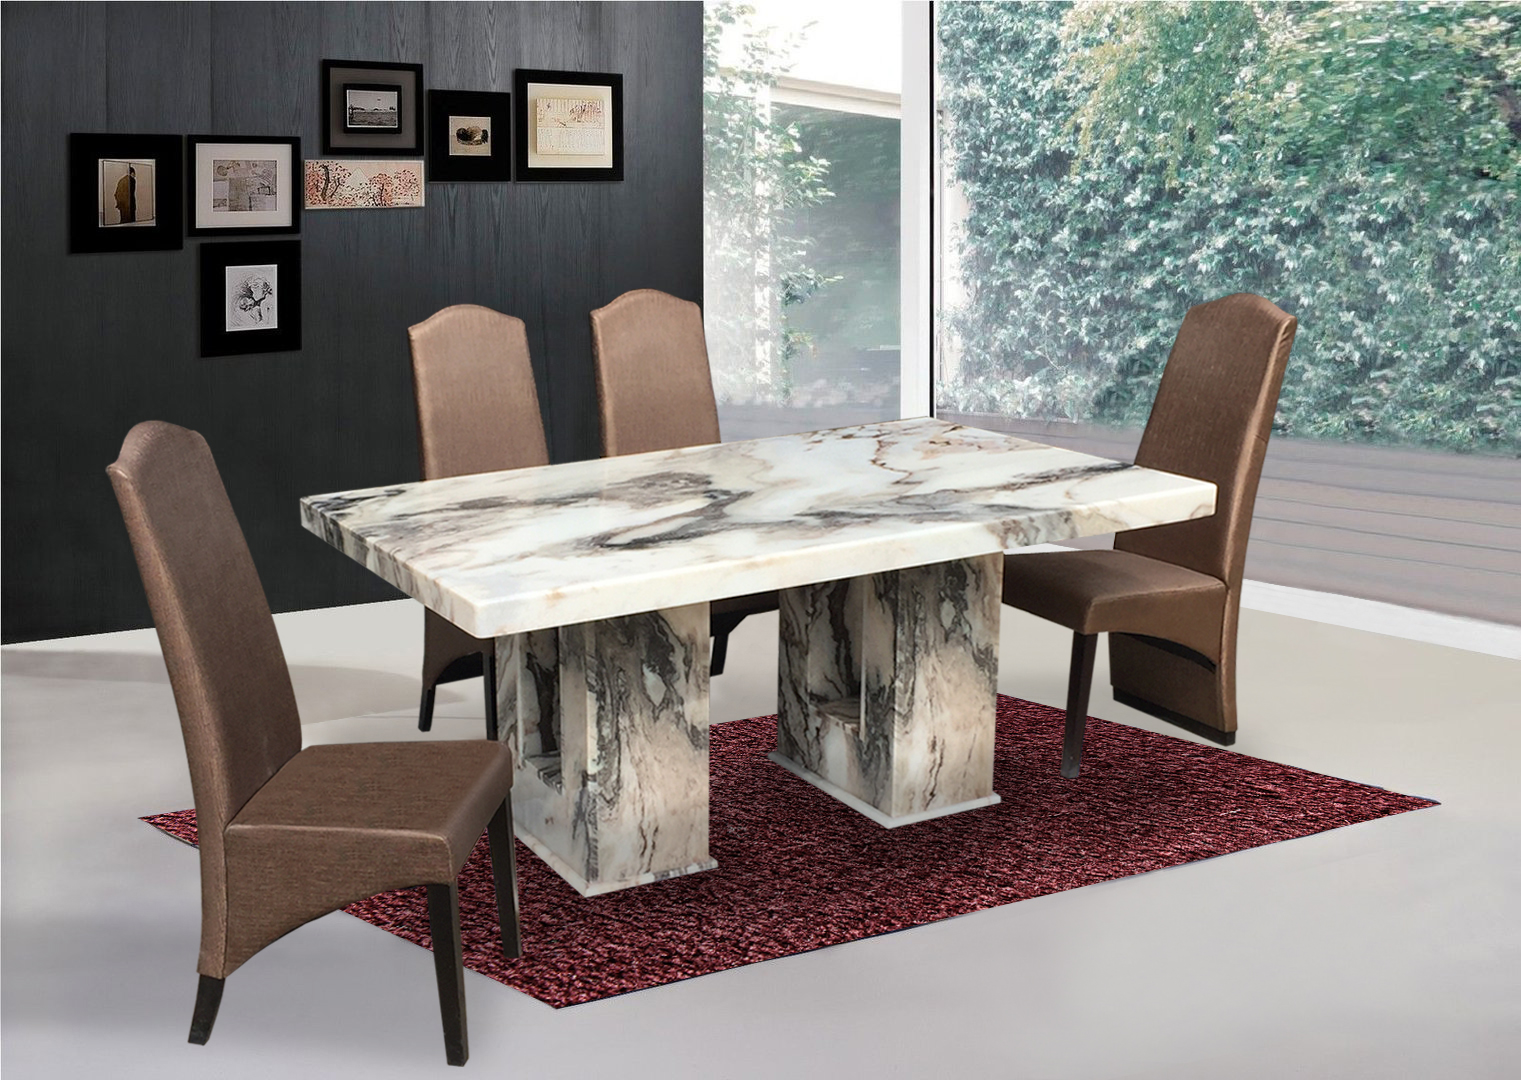 tables and chairs meaning chair covers for ikea henriksdal marble top dining table harvey norman